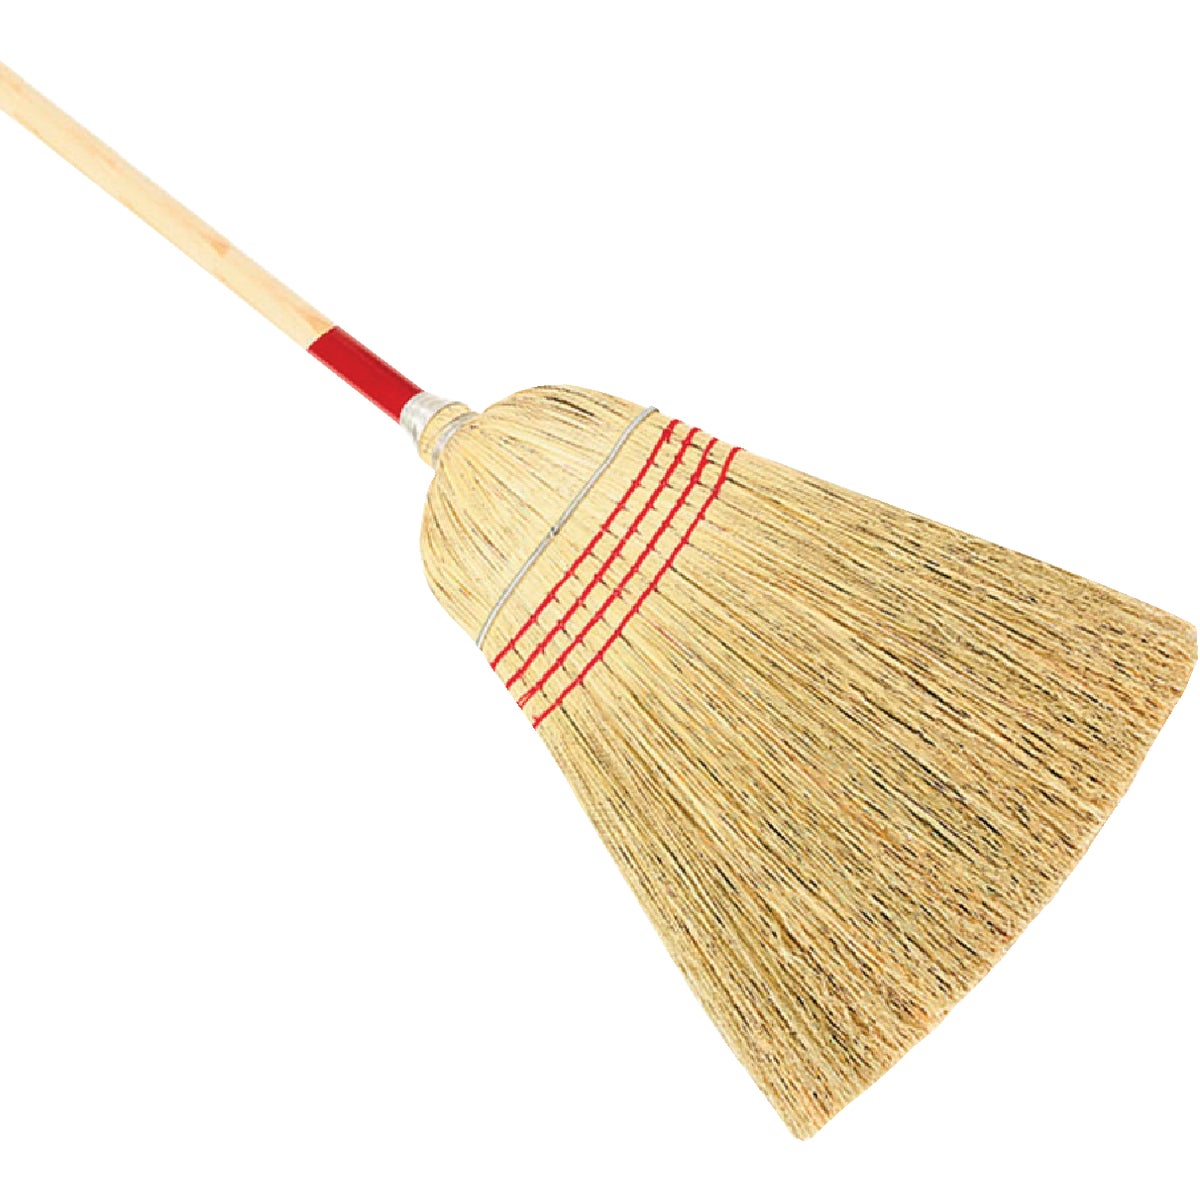 HEAVY DUTY CORN BROOM - 100 by Harper Brush Incom